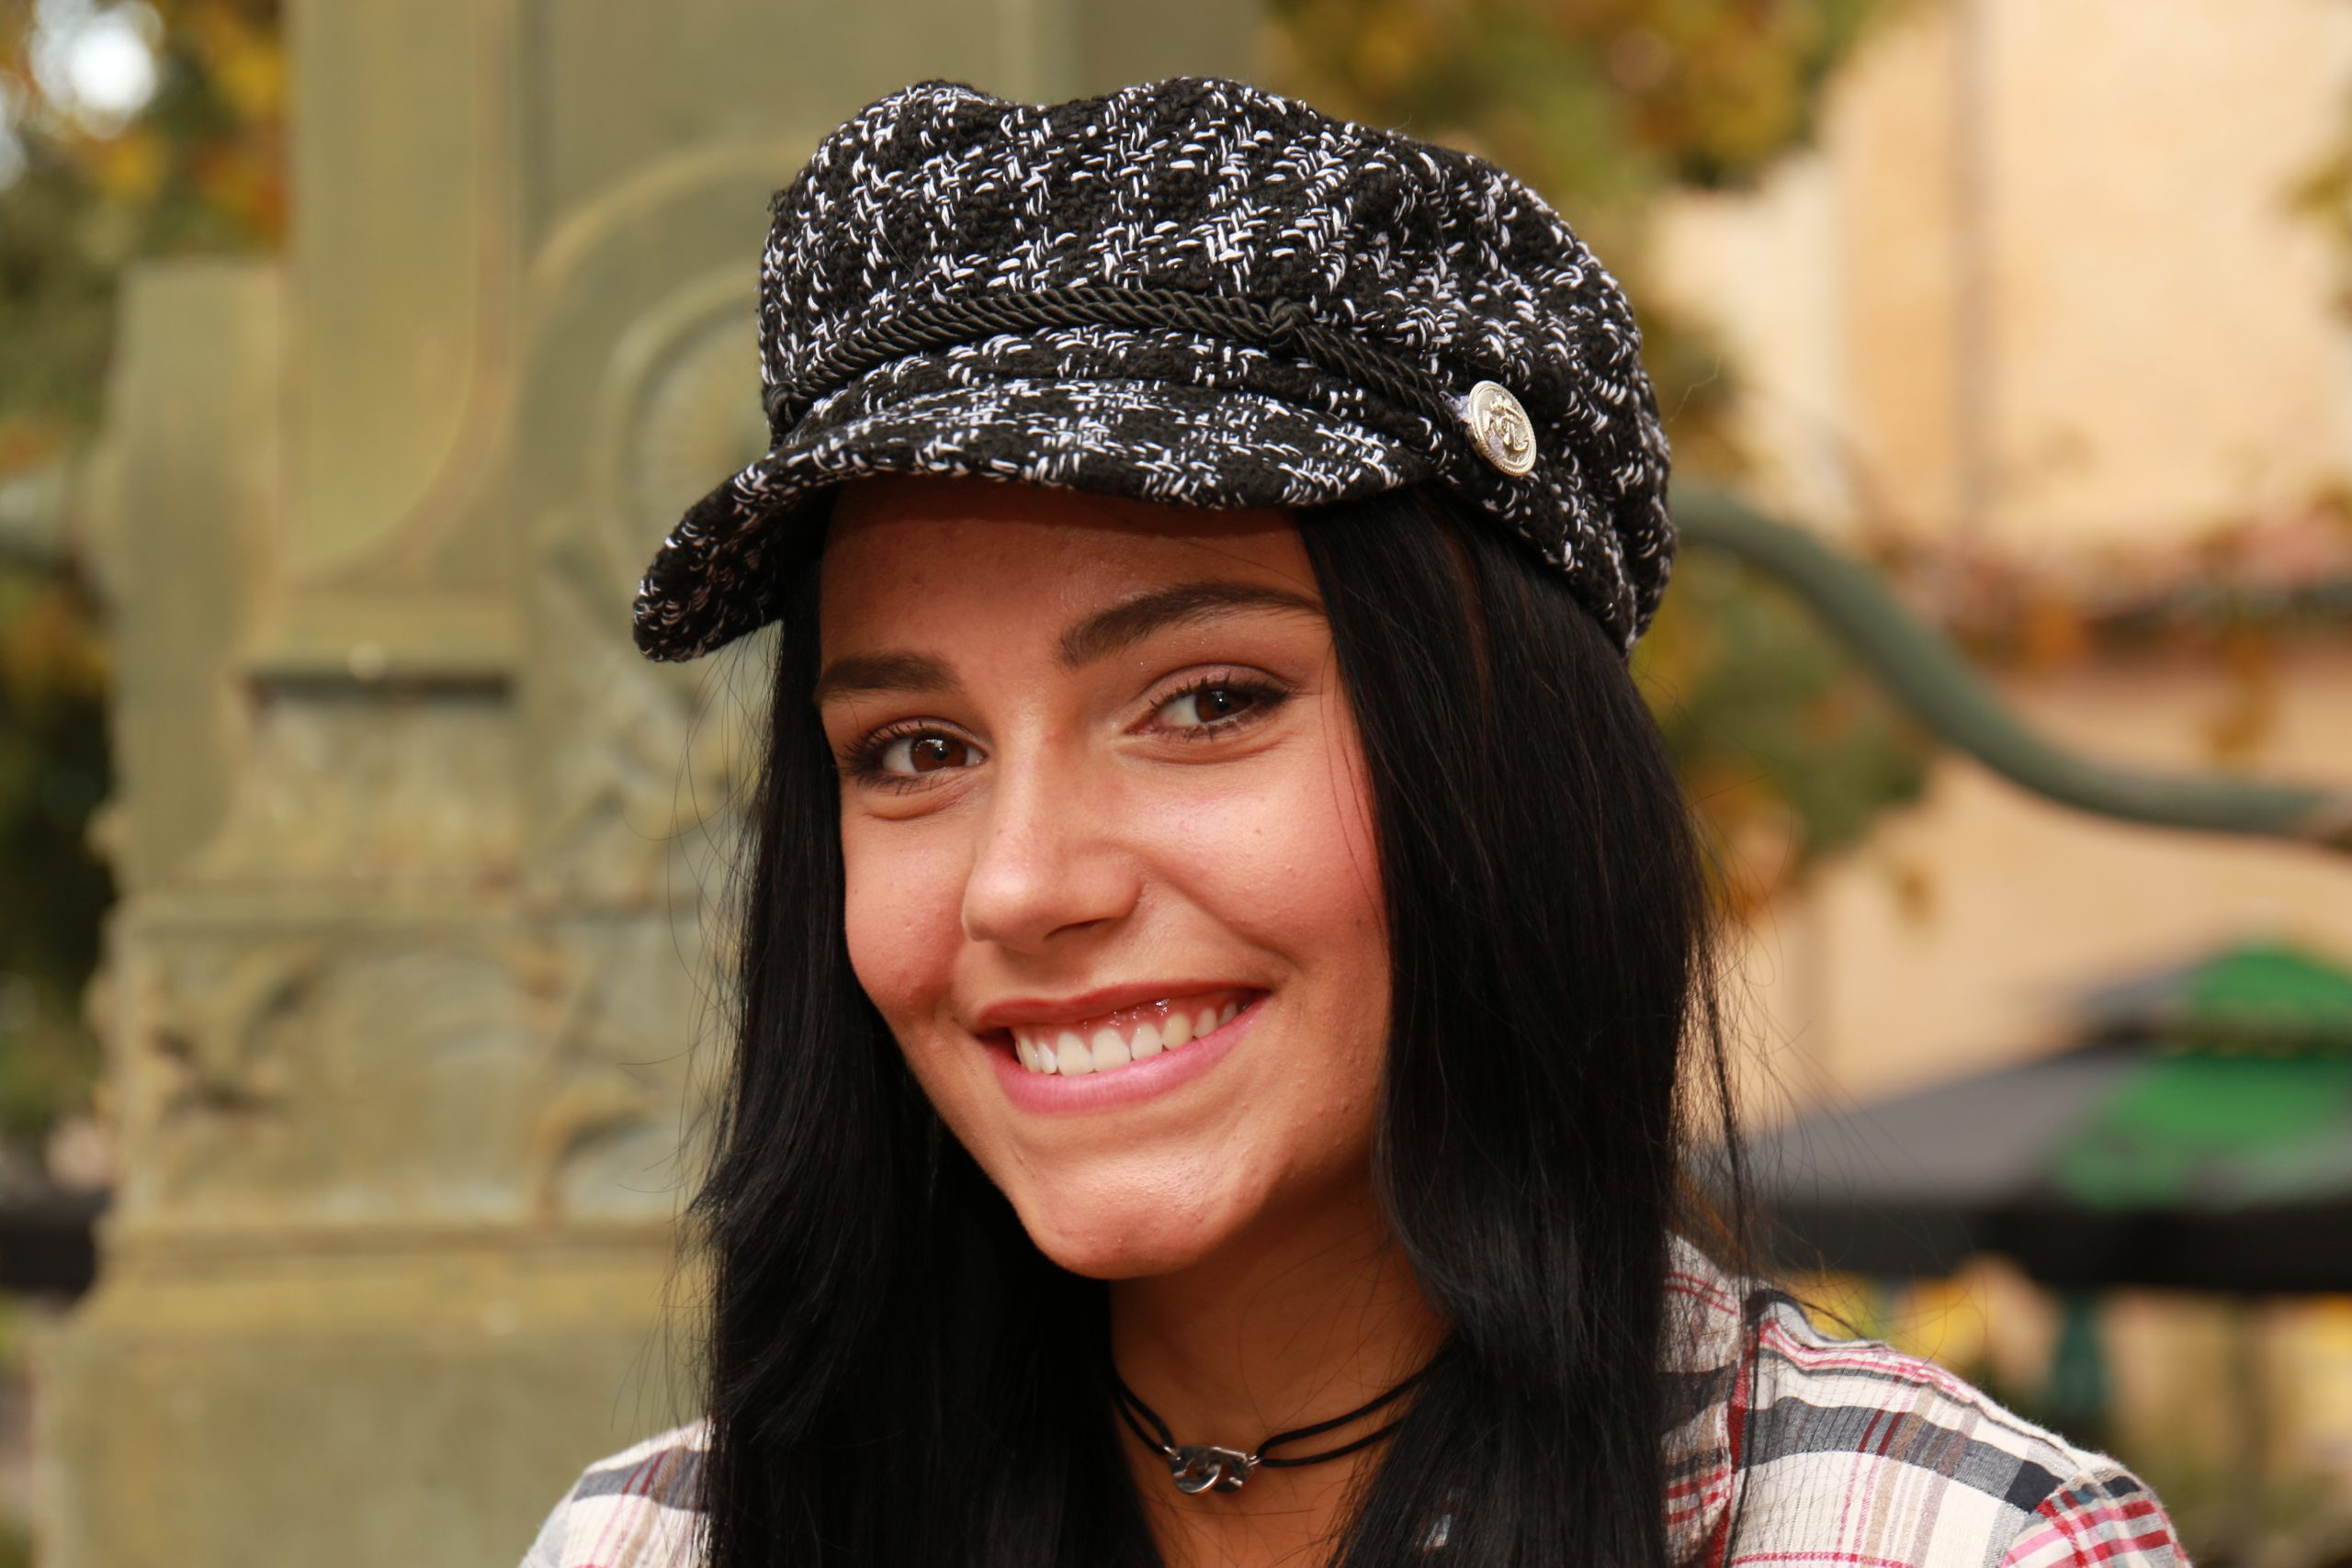 Black and White Baker Boy hat with long black hair in shade No 1 london